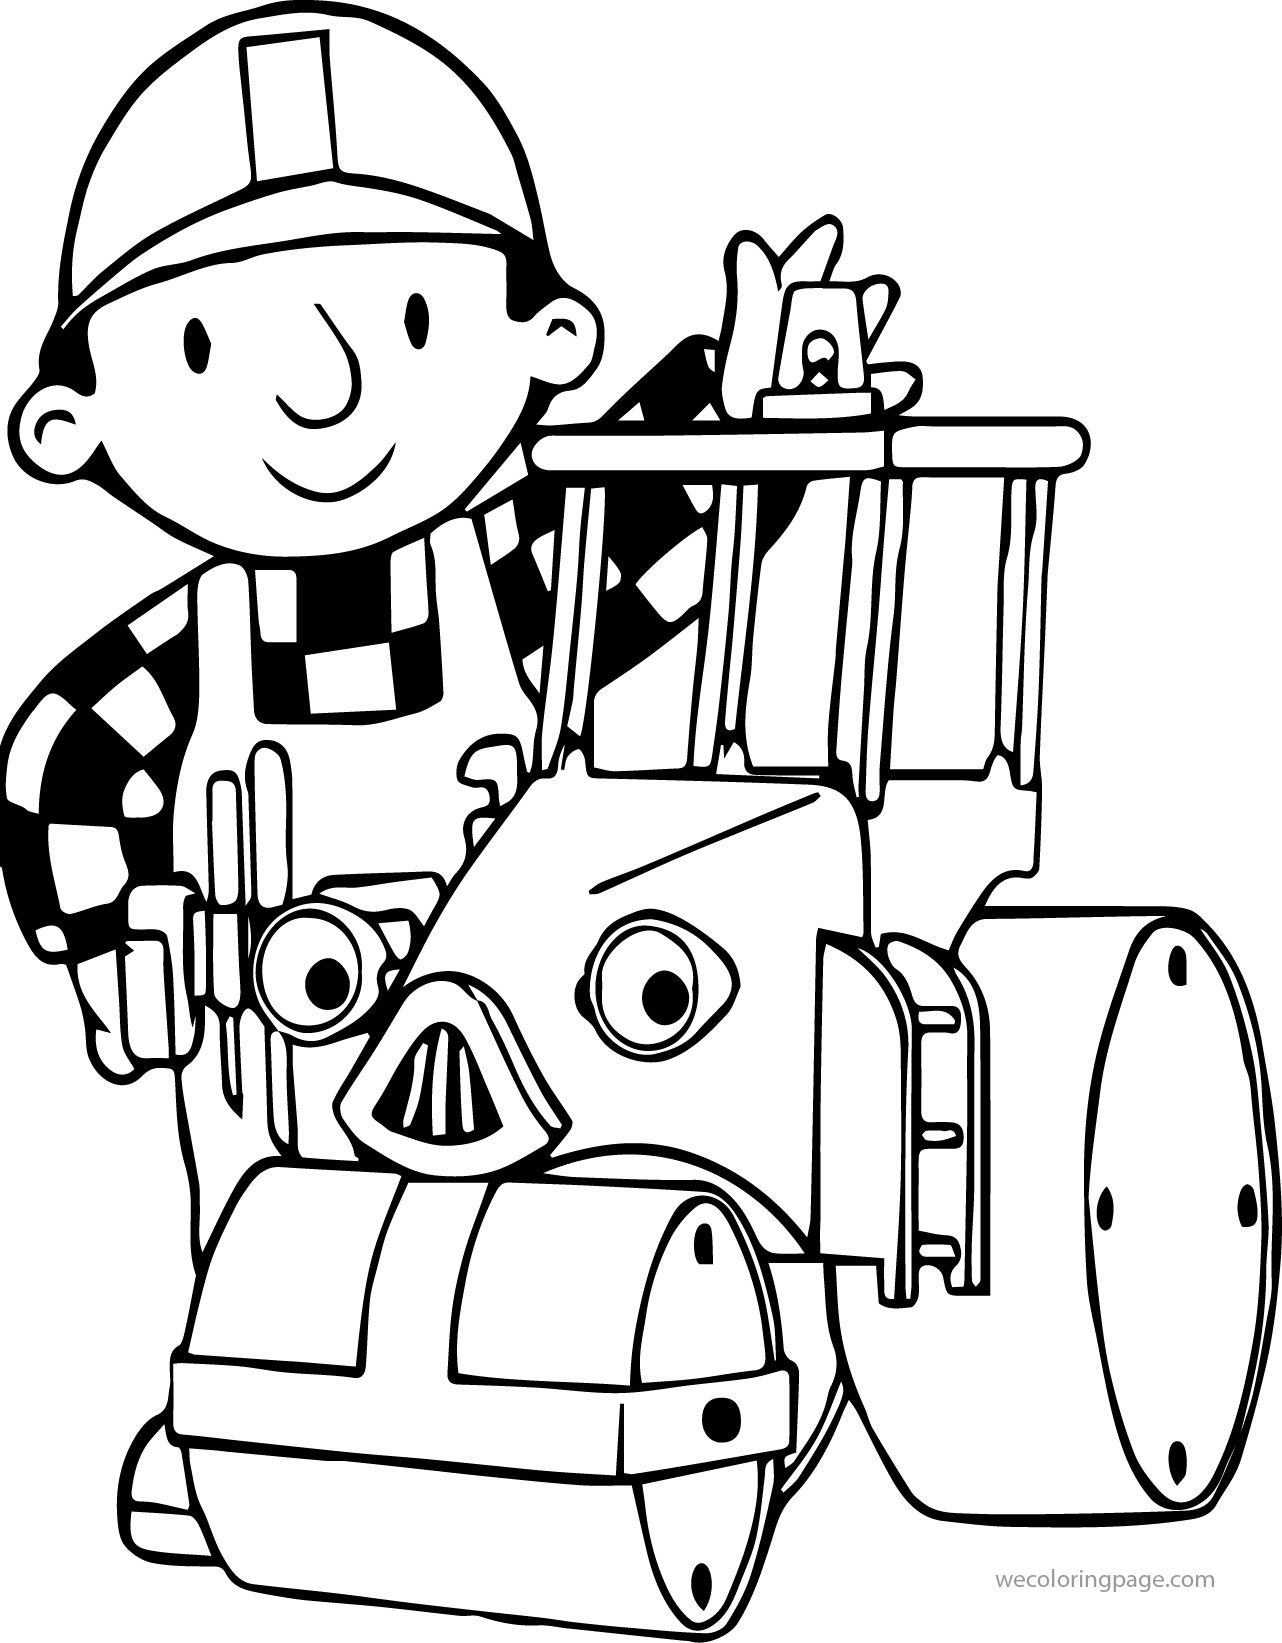 Bob The Builder Tractor Coloring Page | Wecoloringpage